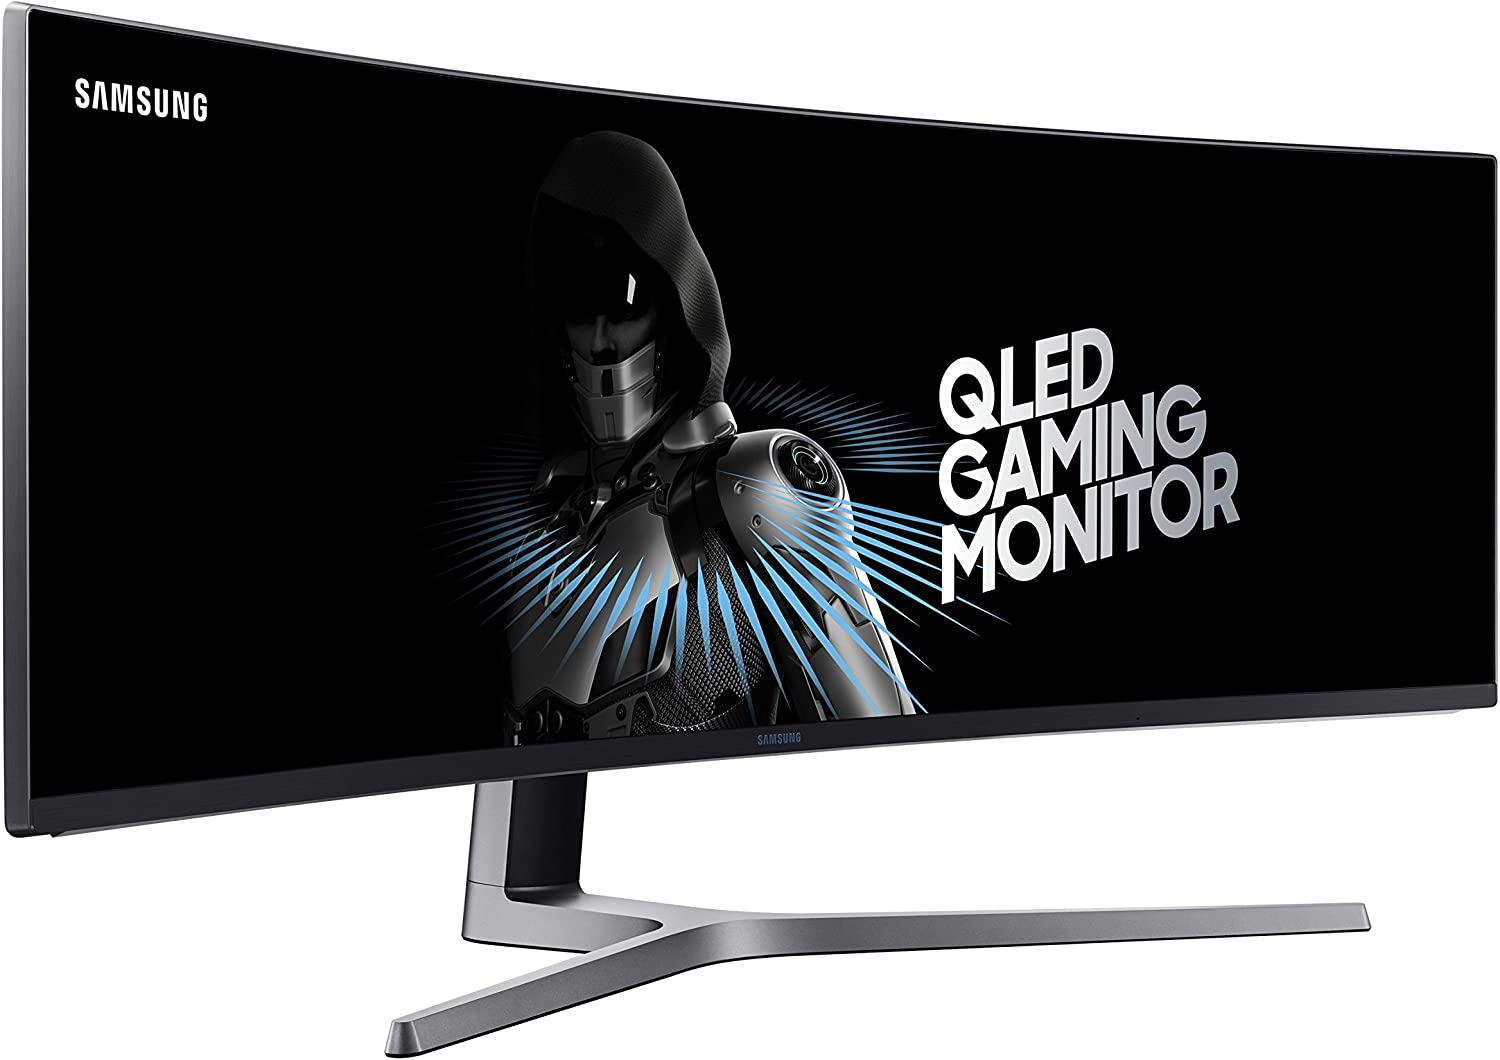 Samsung LC49HG90DMNXZA 49″ (3840 x 1080p) 144Hz Curved QLED Gaming Monitor with HDR